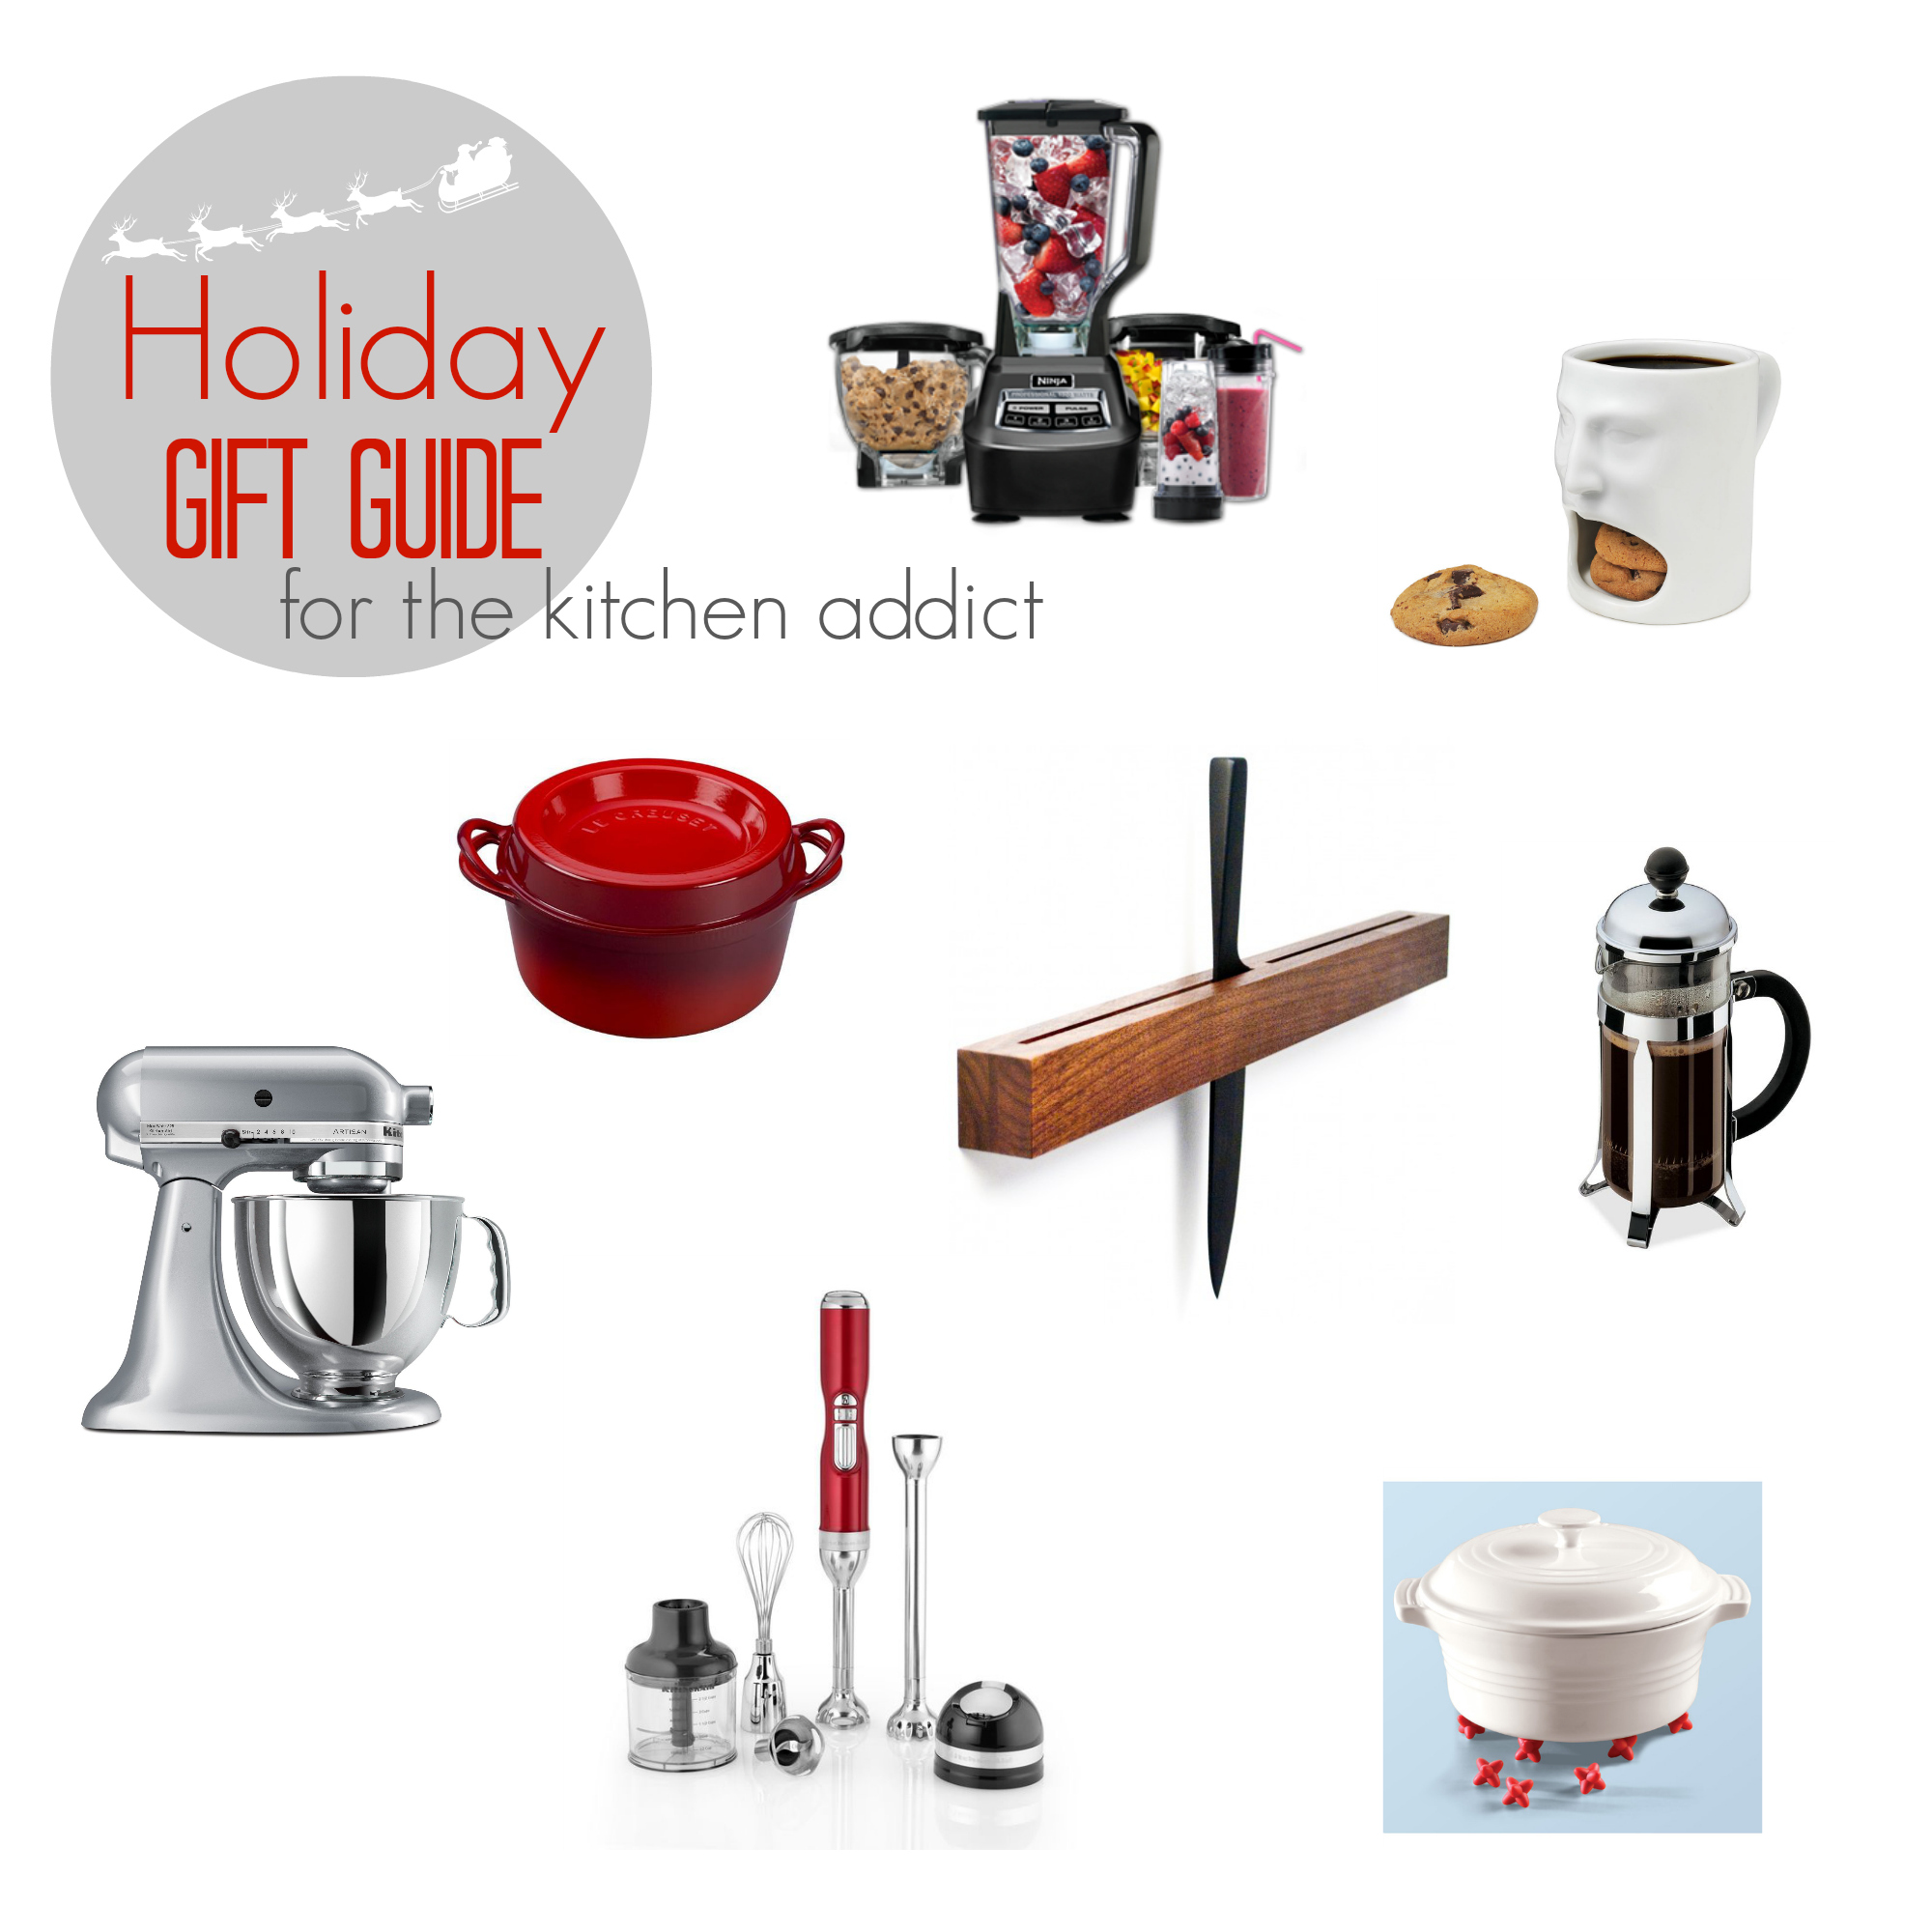 Holiday Gift Guide for the Kitchen Addict - TheNoshery.com